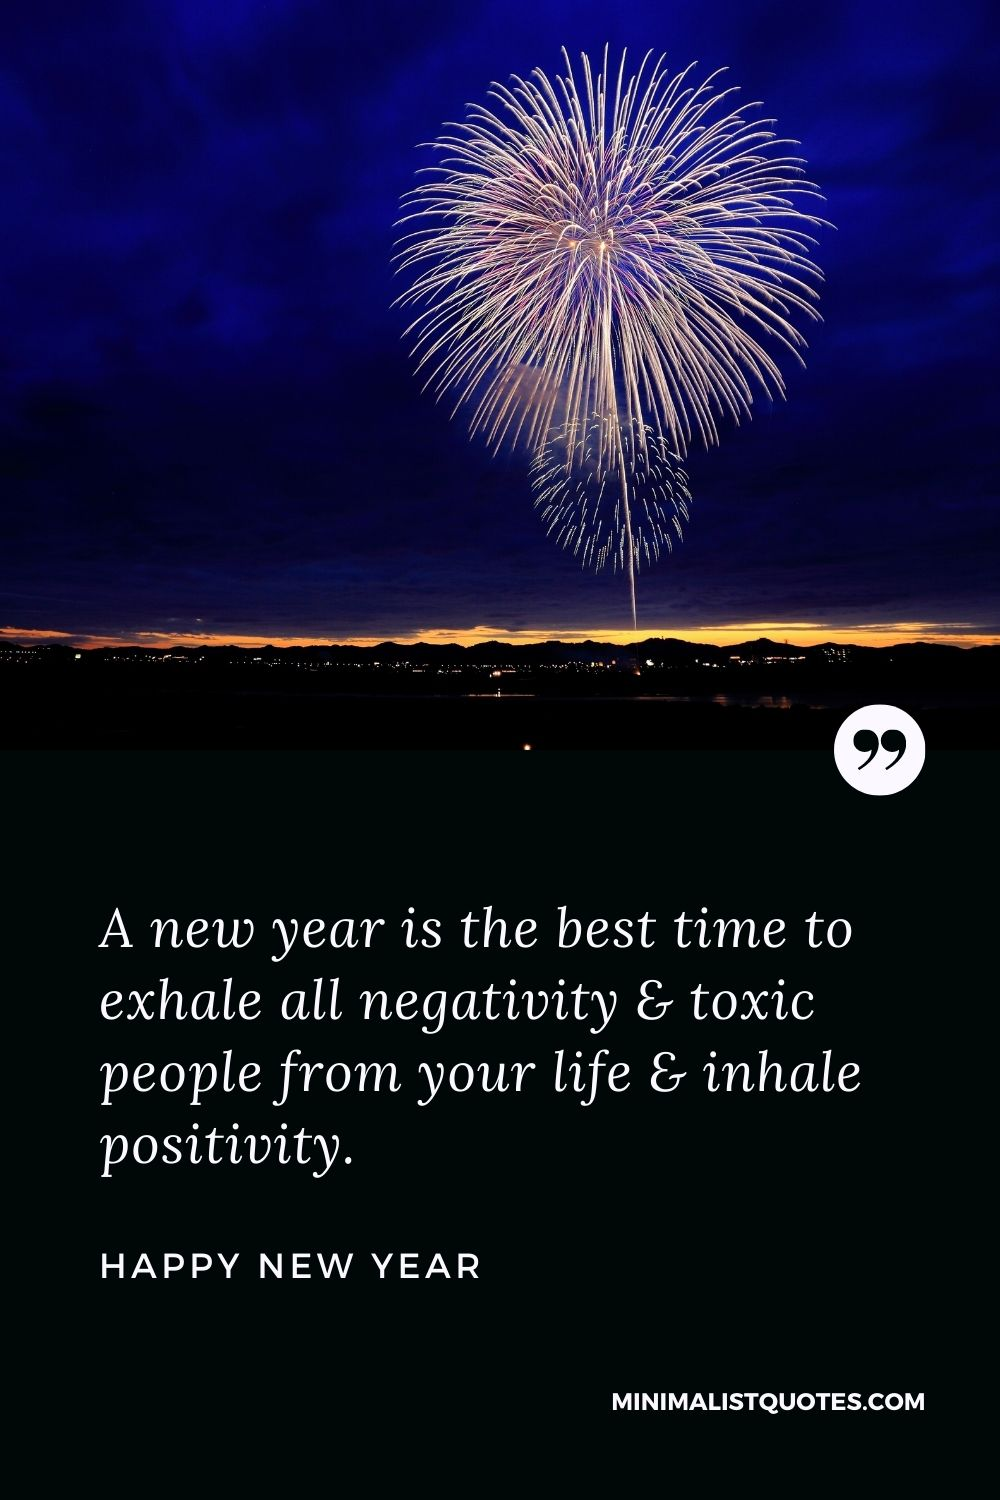 New Year Wish - A new year is the best time to exhale all negativity & toxic people from your life & inhale positivity.